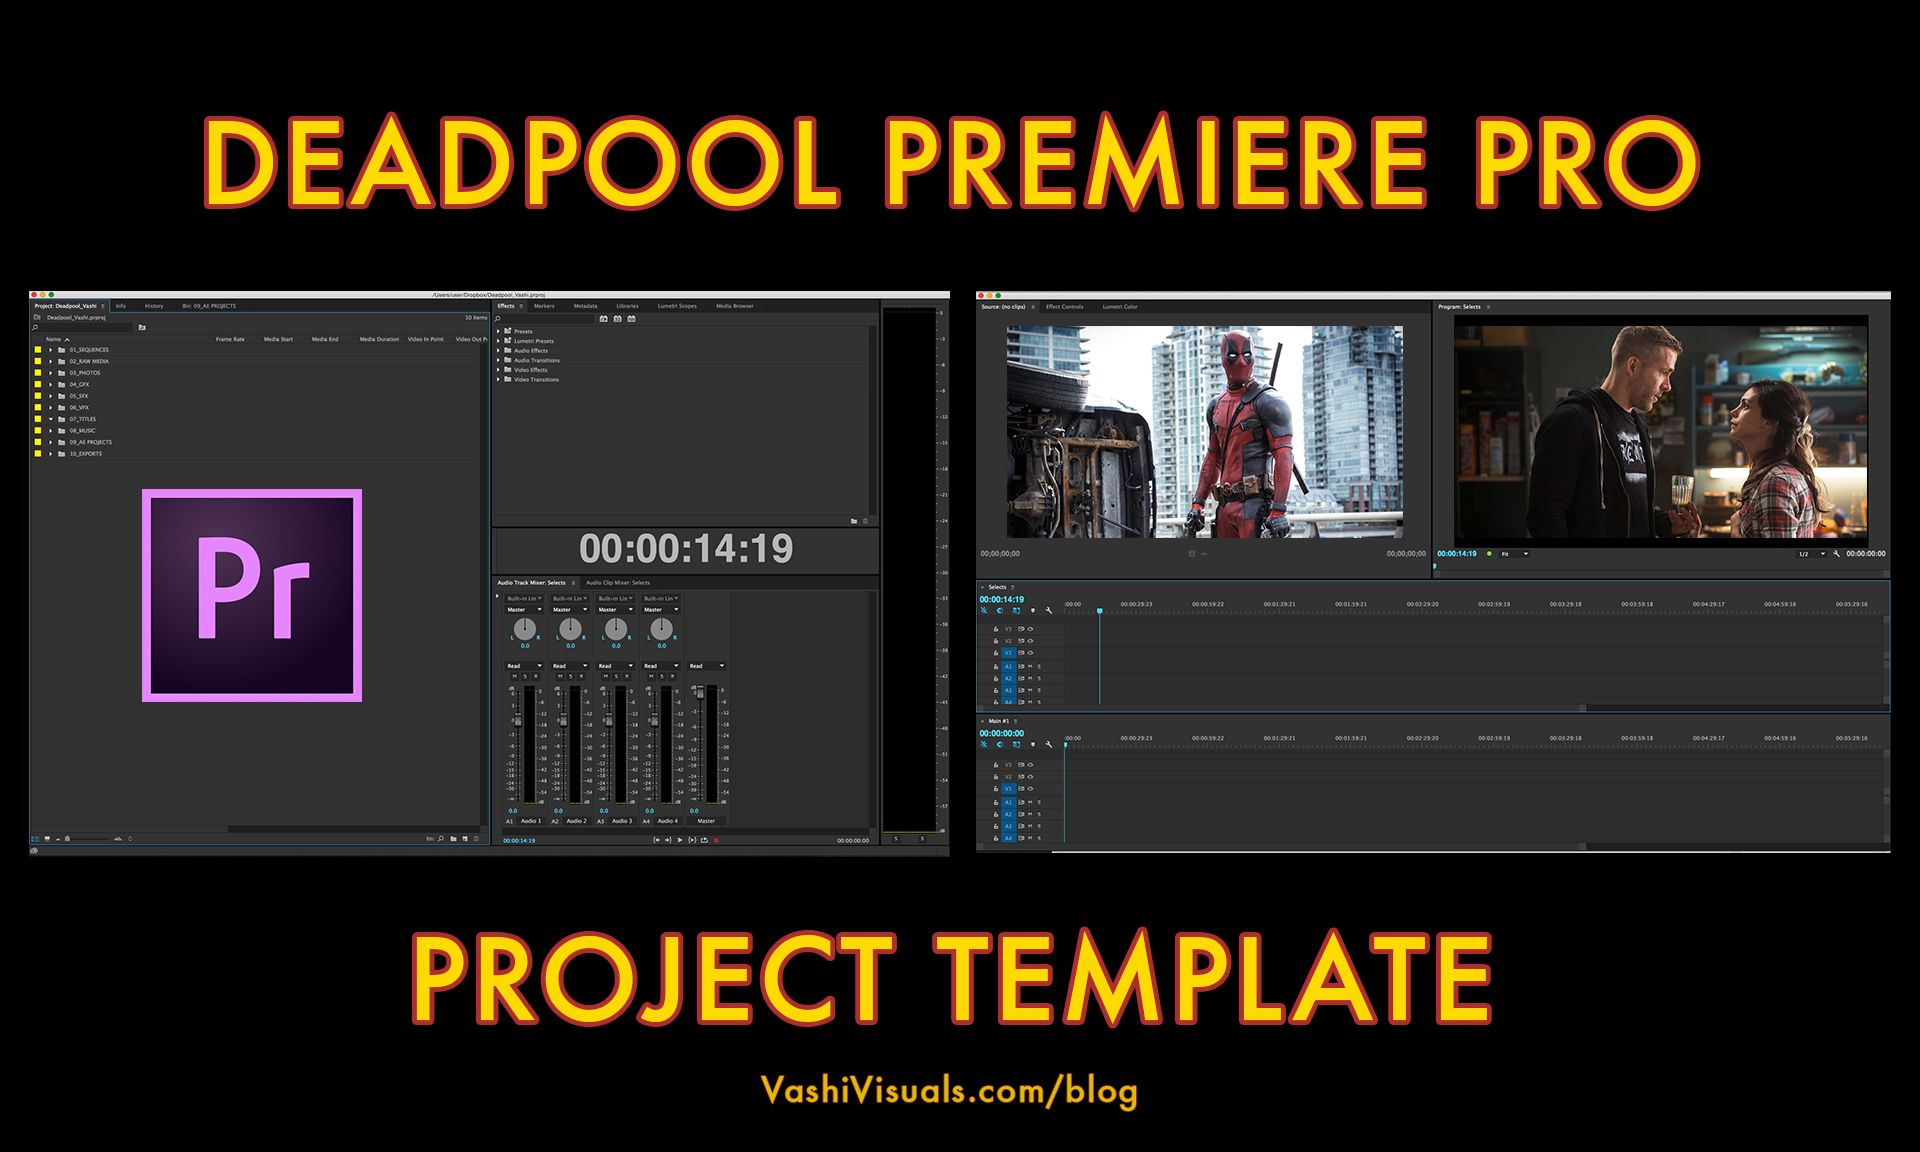 Deadpool premiere pro project template for Adobe premiere pro templates free